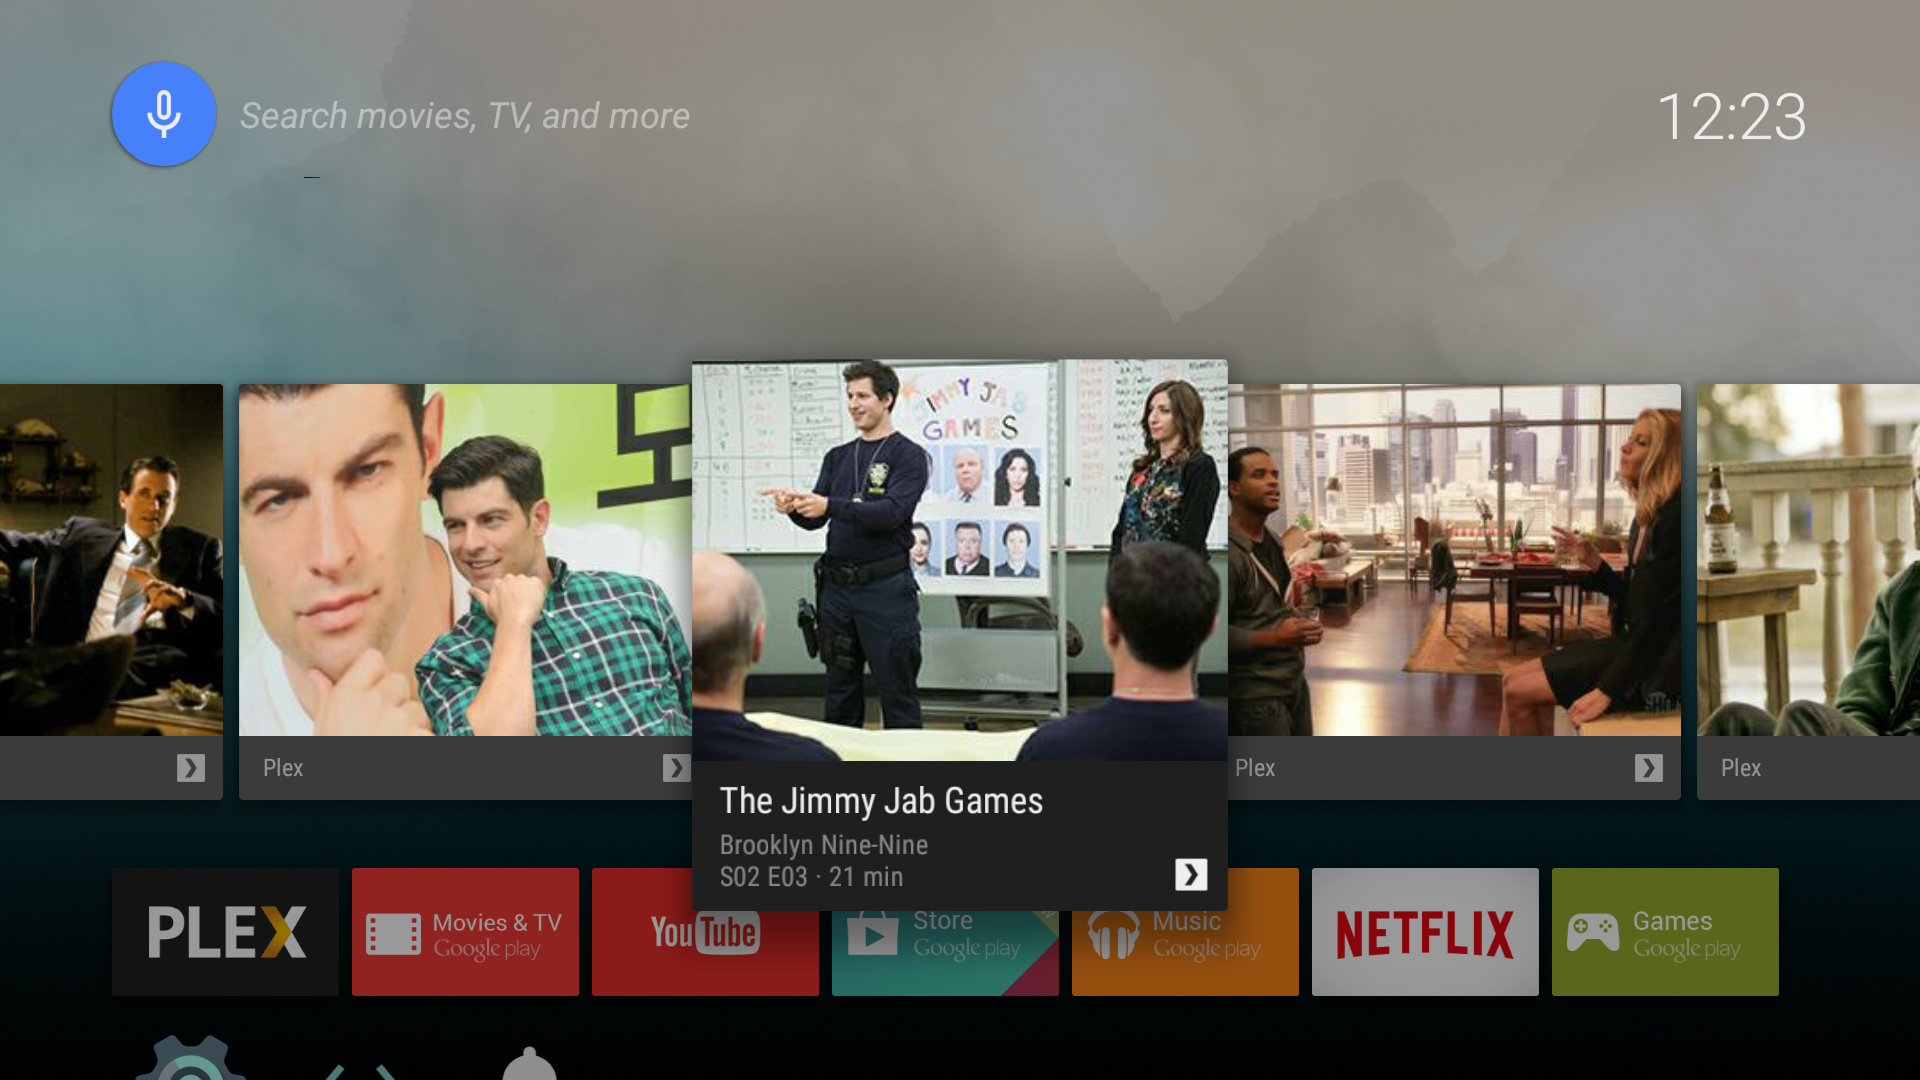 10 best Android TV apps